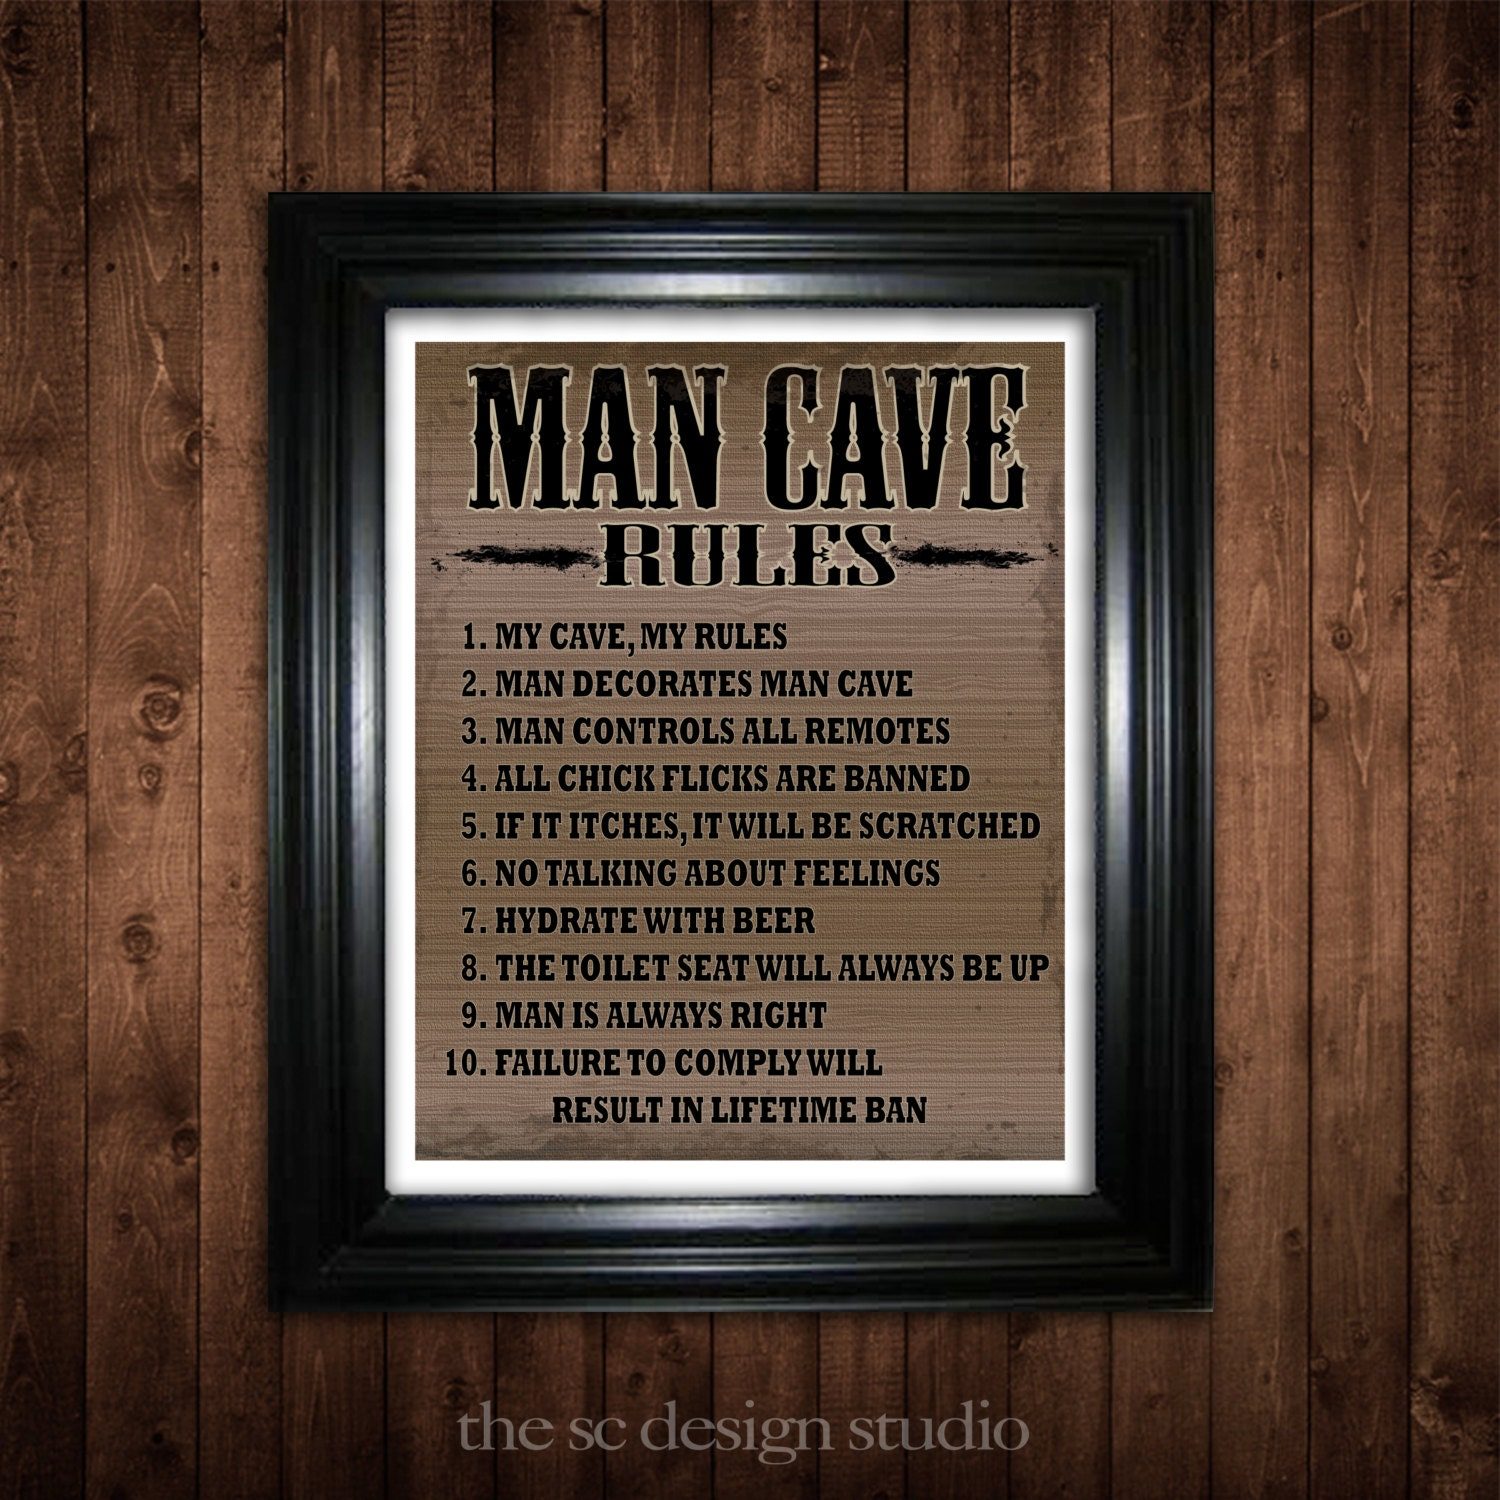 Man Cave Gifts Reviews : Man cave rules gift for him gifts dad fathers day